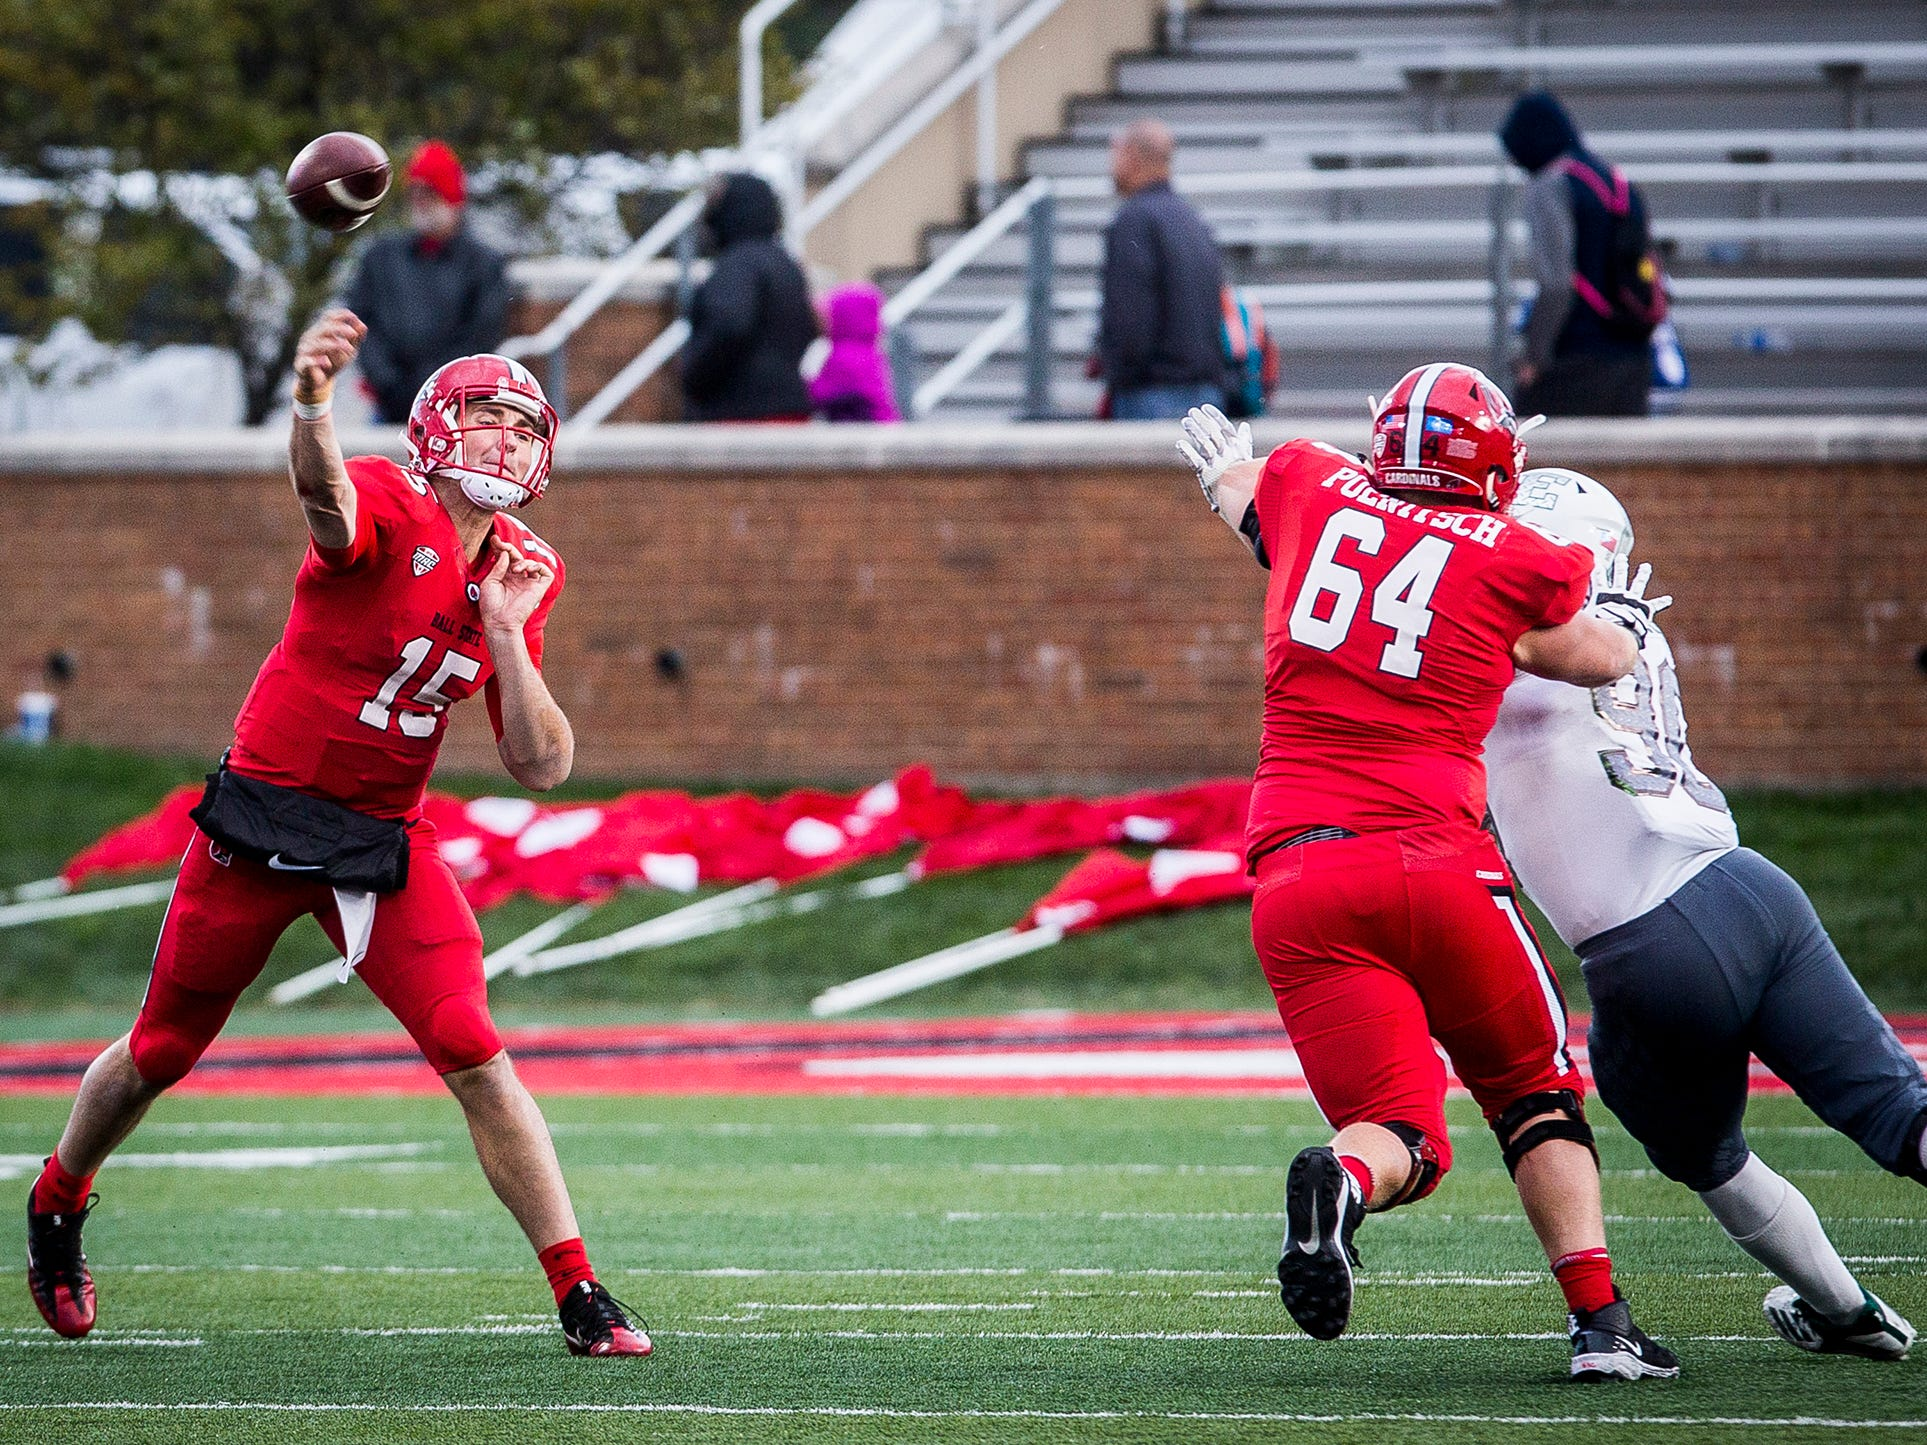 Ball State's Andrew Poenitsch (64) holds his block as Riley Neal throws a pass against Eastern Michigan during their game at Scheumann Stadium Saturday, Oct. 20, 2018.